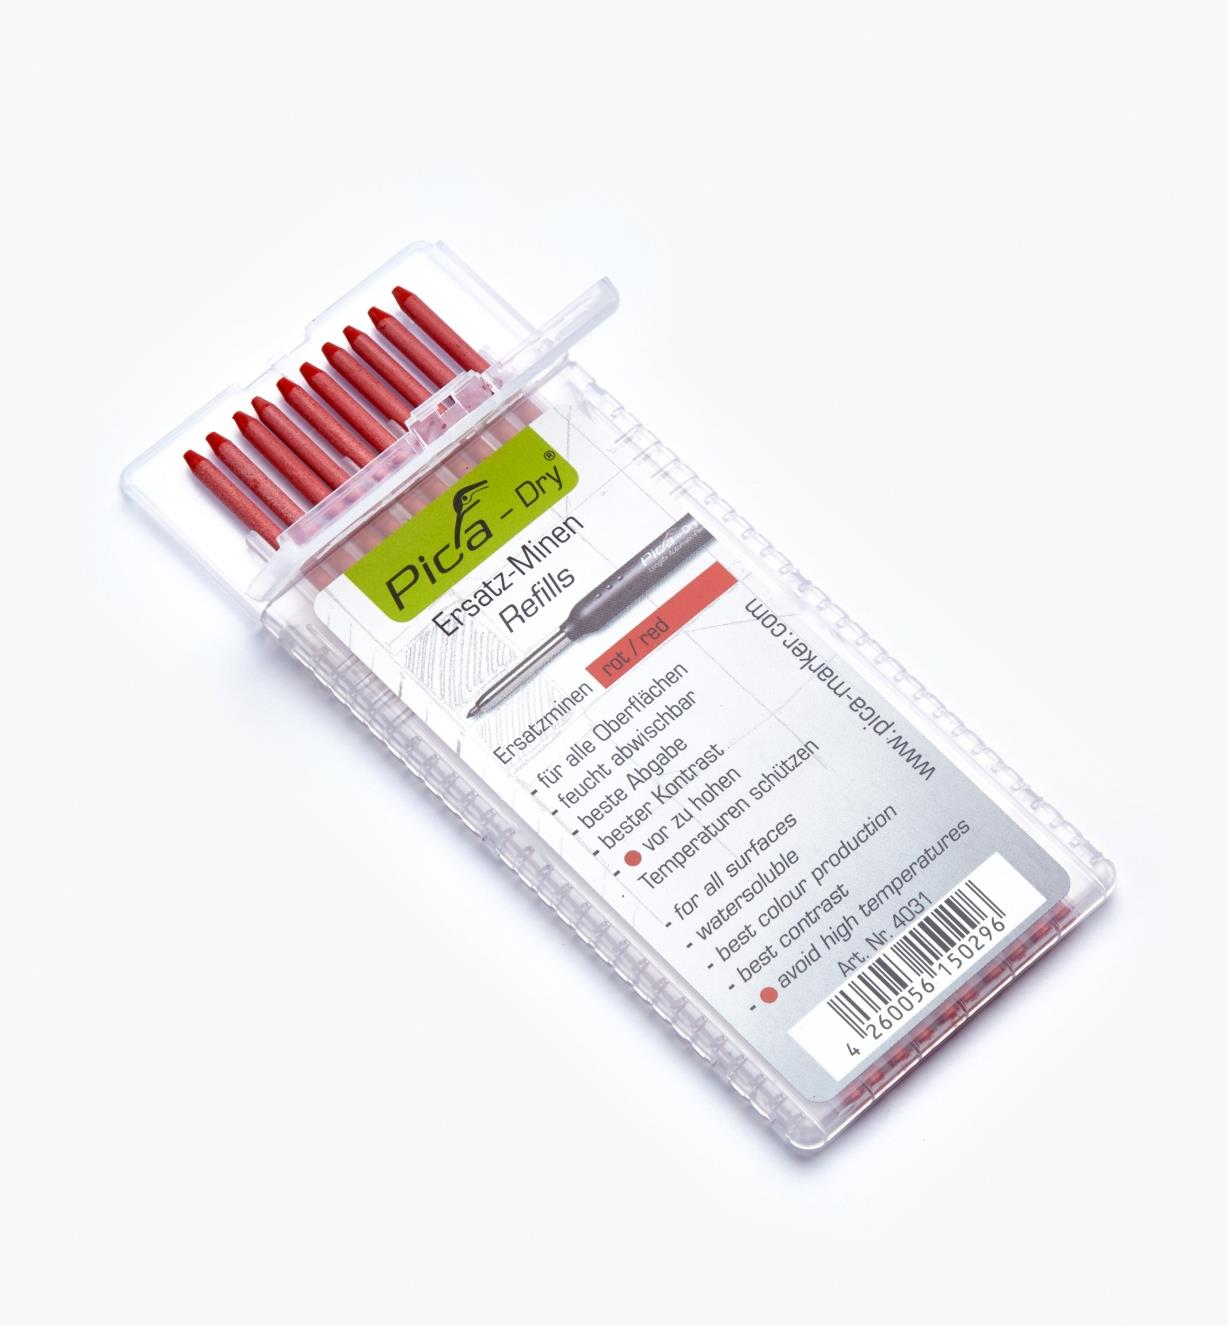 25K0413 - Pica-Dry Red Water-Soluble 2B Leads, pkg. of 10